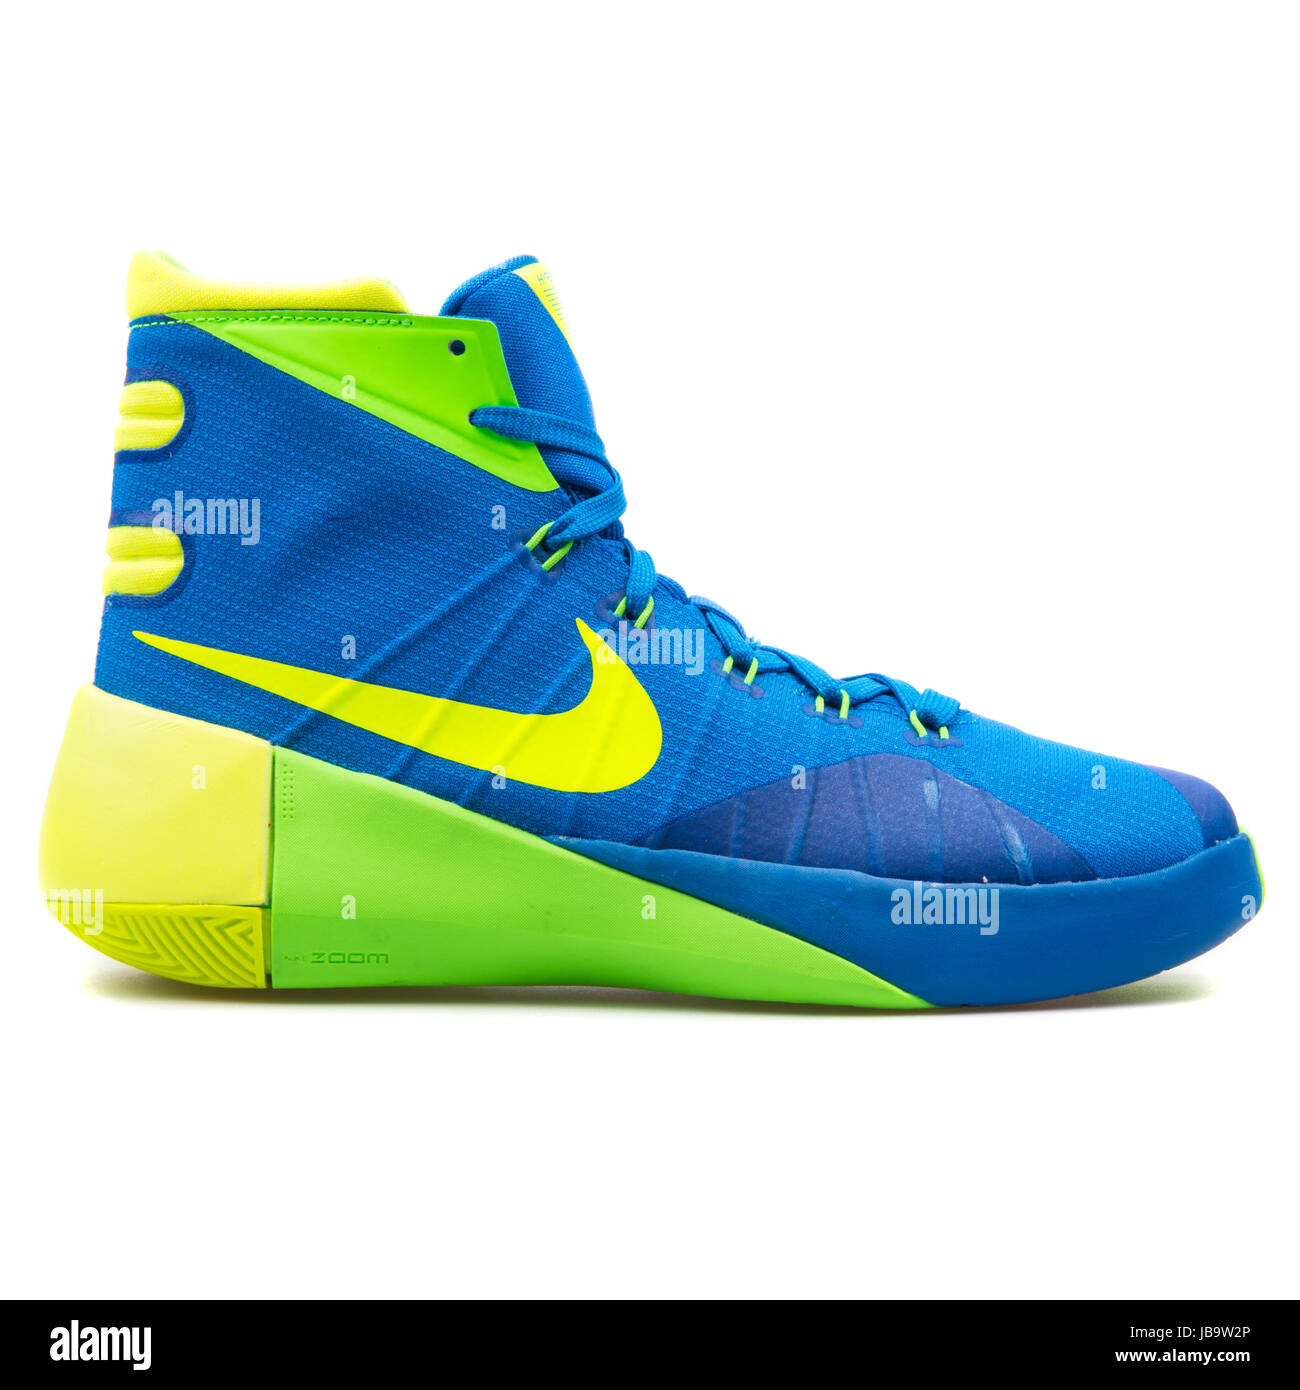 3ab471755c9a ... where to buy nike hyperdunk 2015 gs blue green and yellow youths  basketball shoes 759974 473